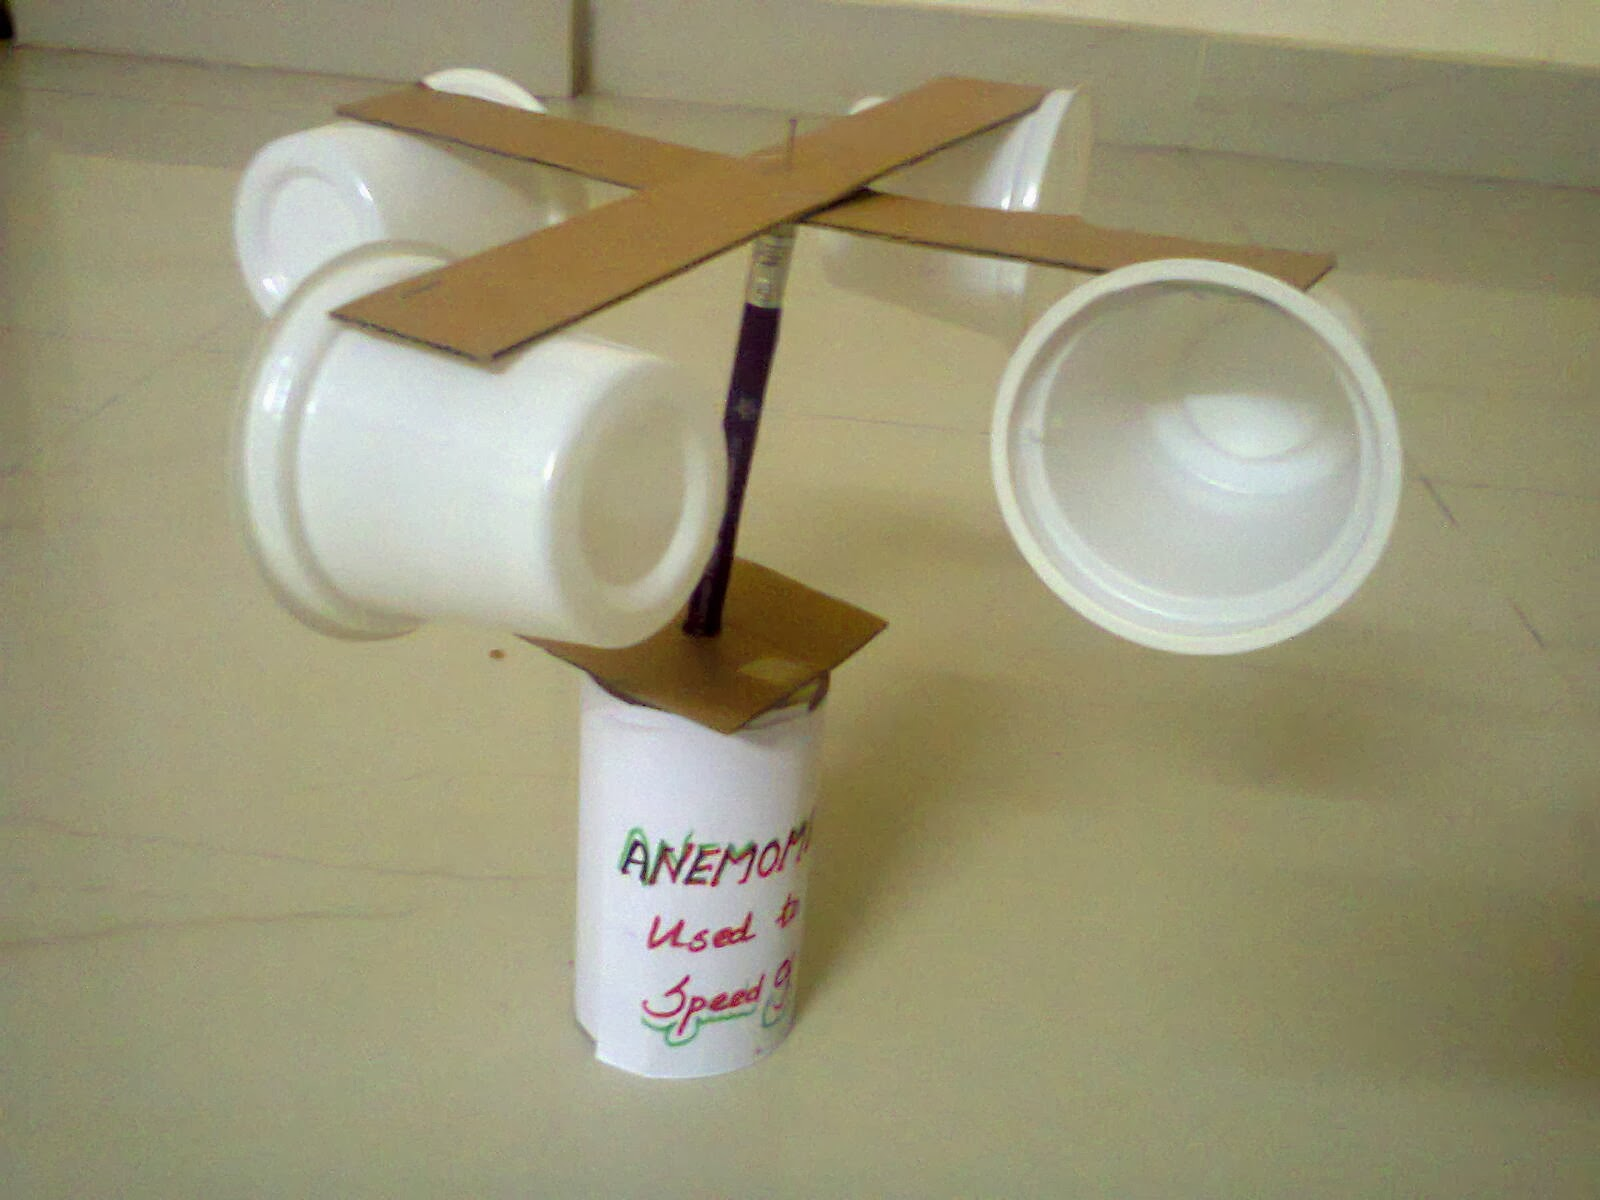 Creative of rainy anemometer for Waste out of best for school projects